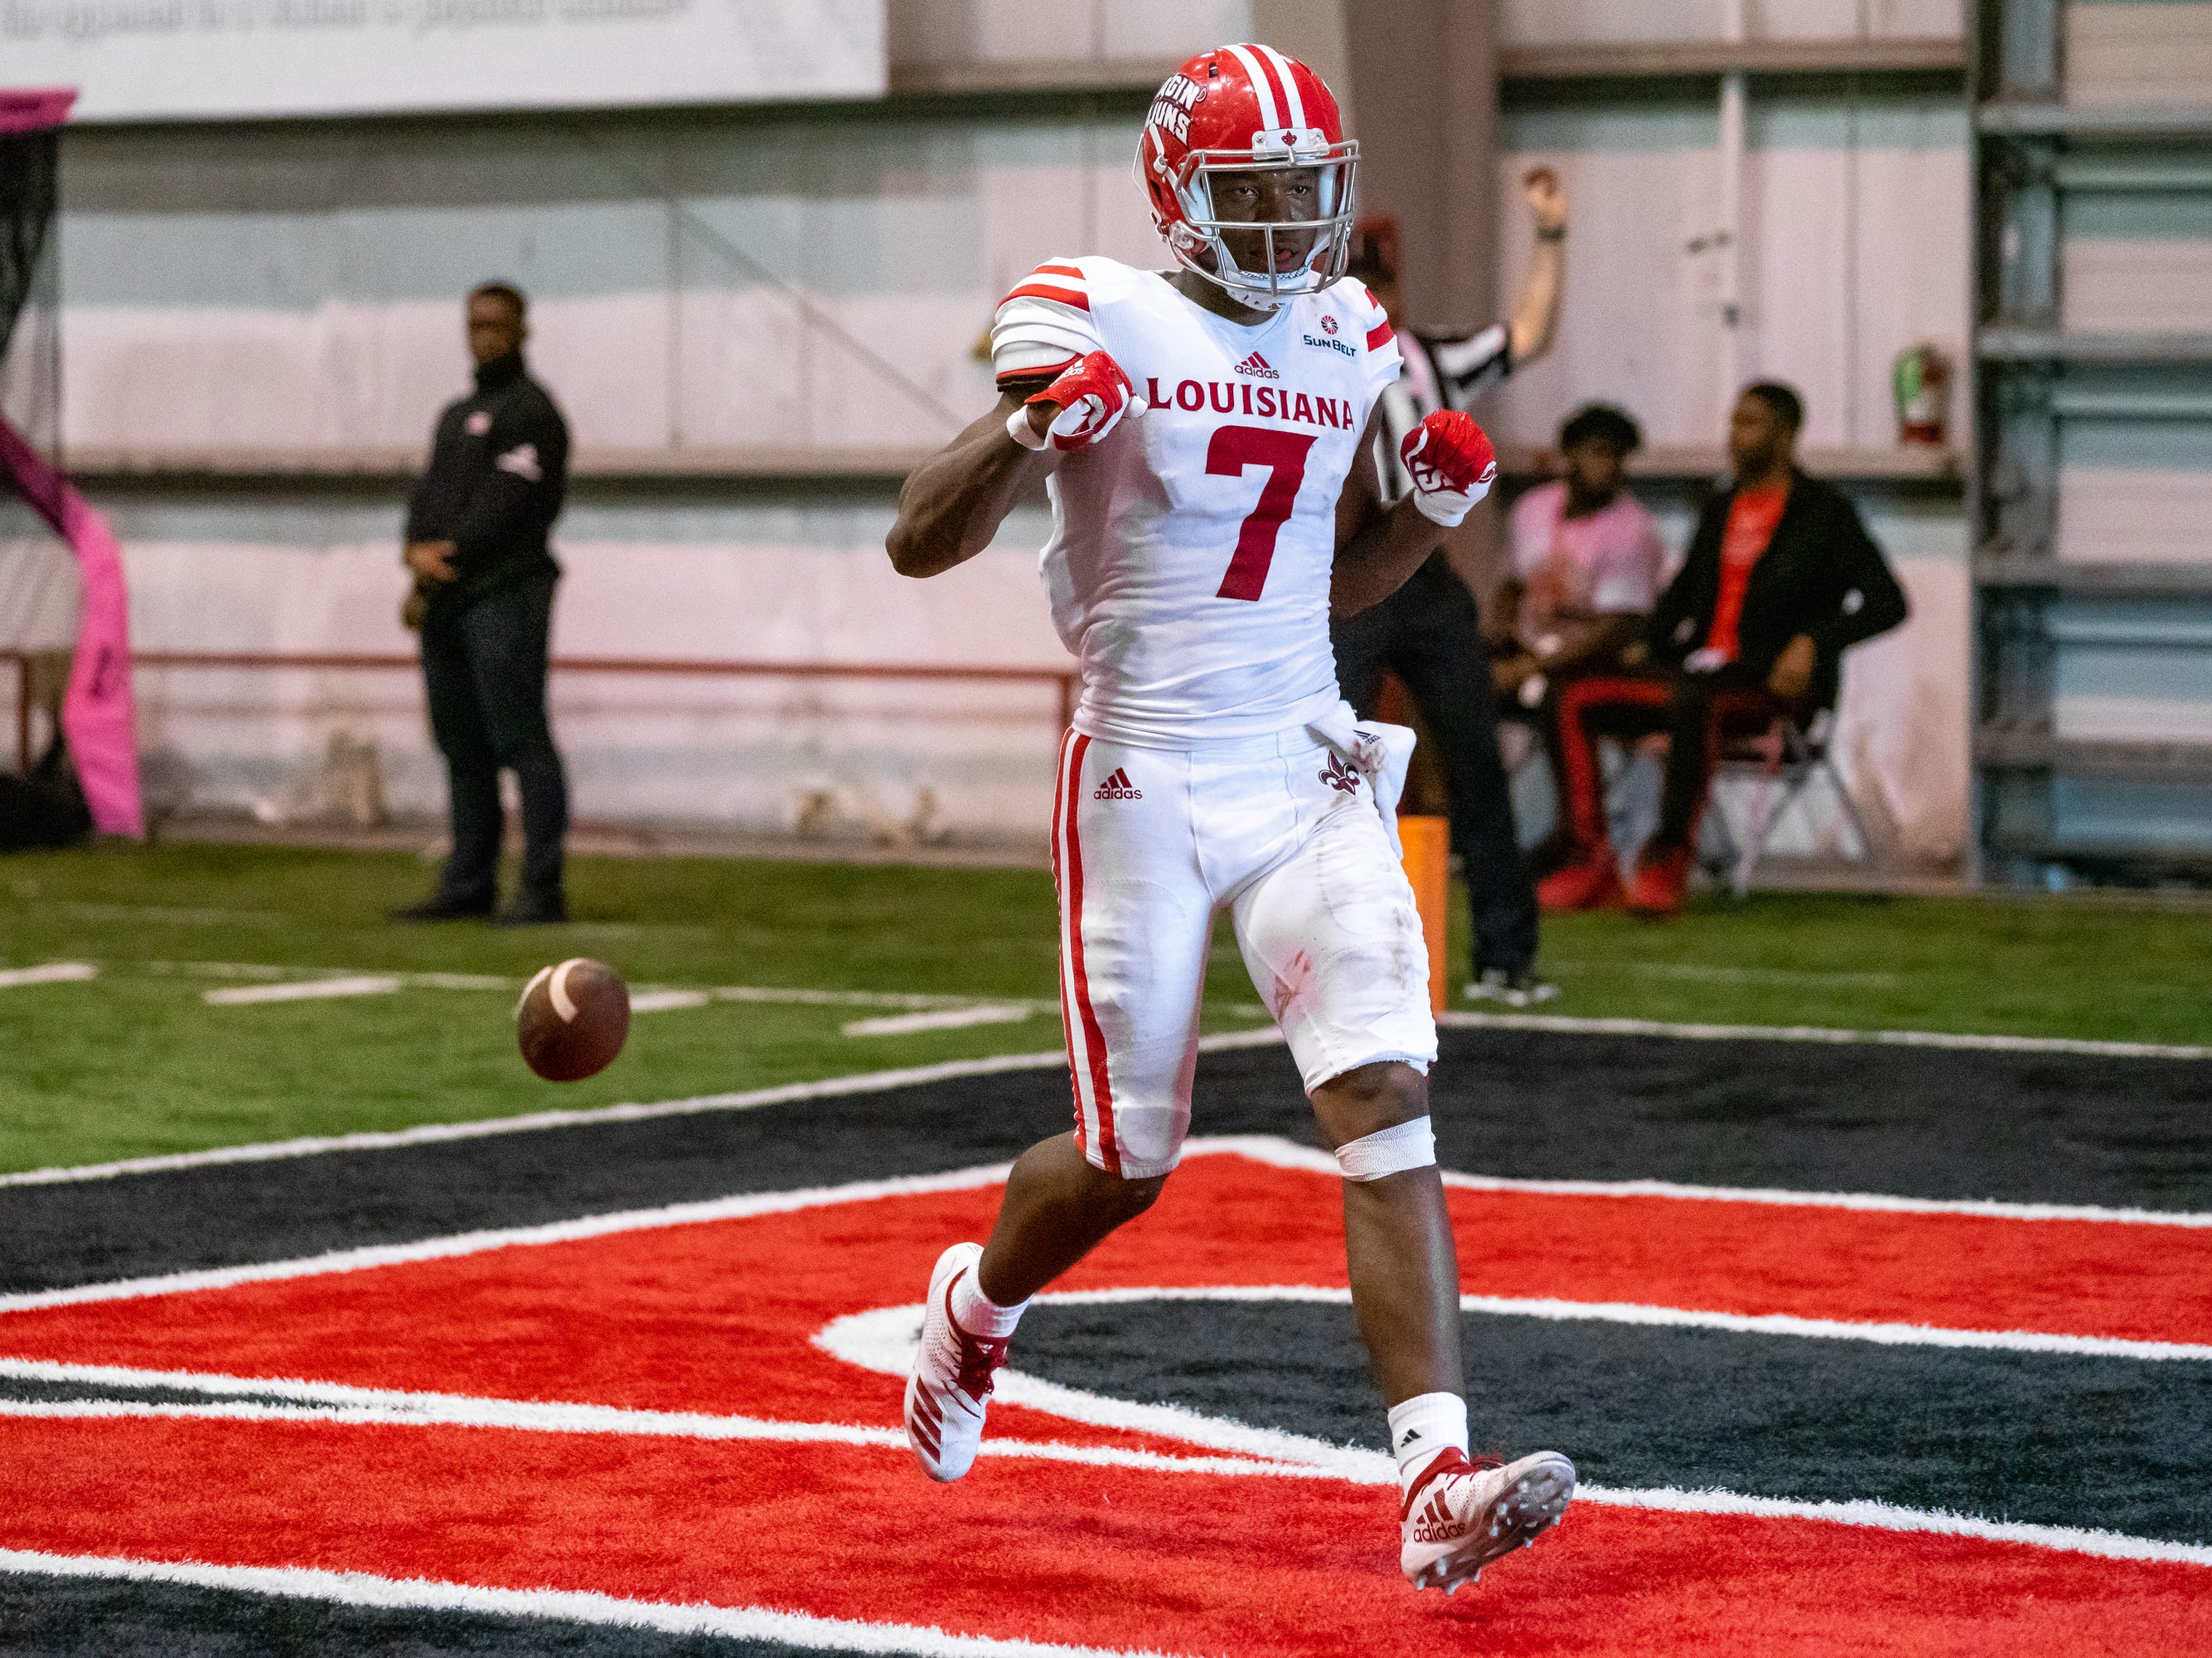 UL's Brian Smith celebrates his score in the endzone as the Ragin' Cajuns football team plays their annual Spring football game against one another in the Leon Moncla trainig facility on April 13, 2019.